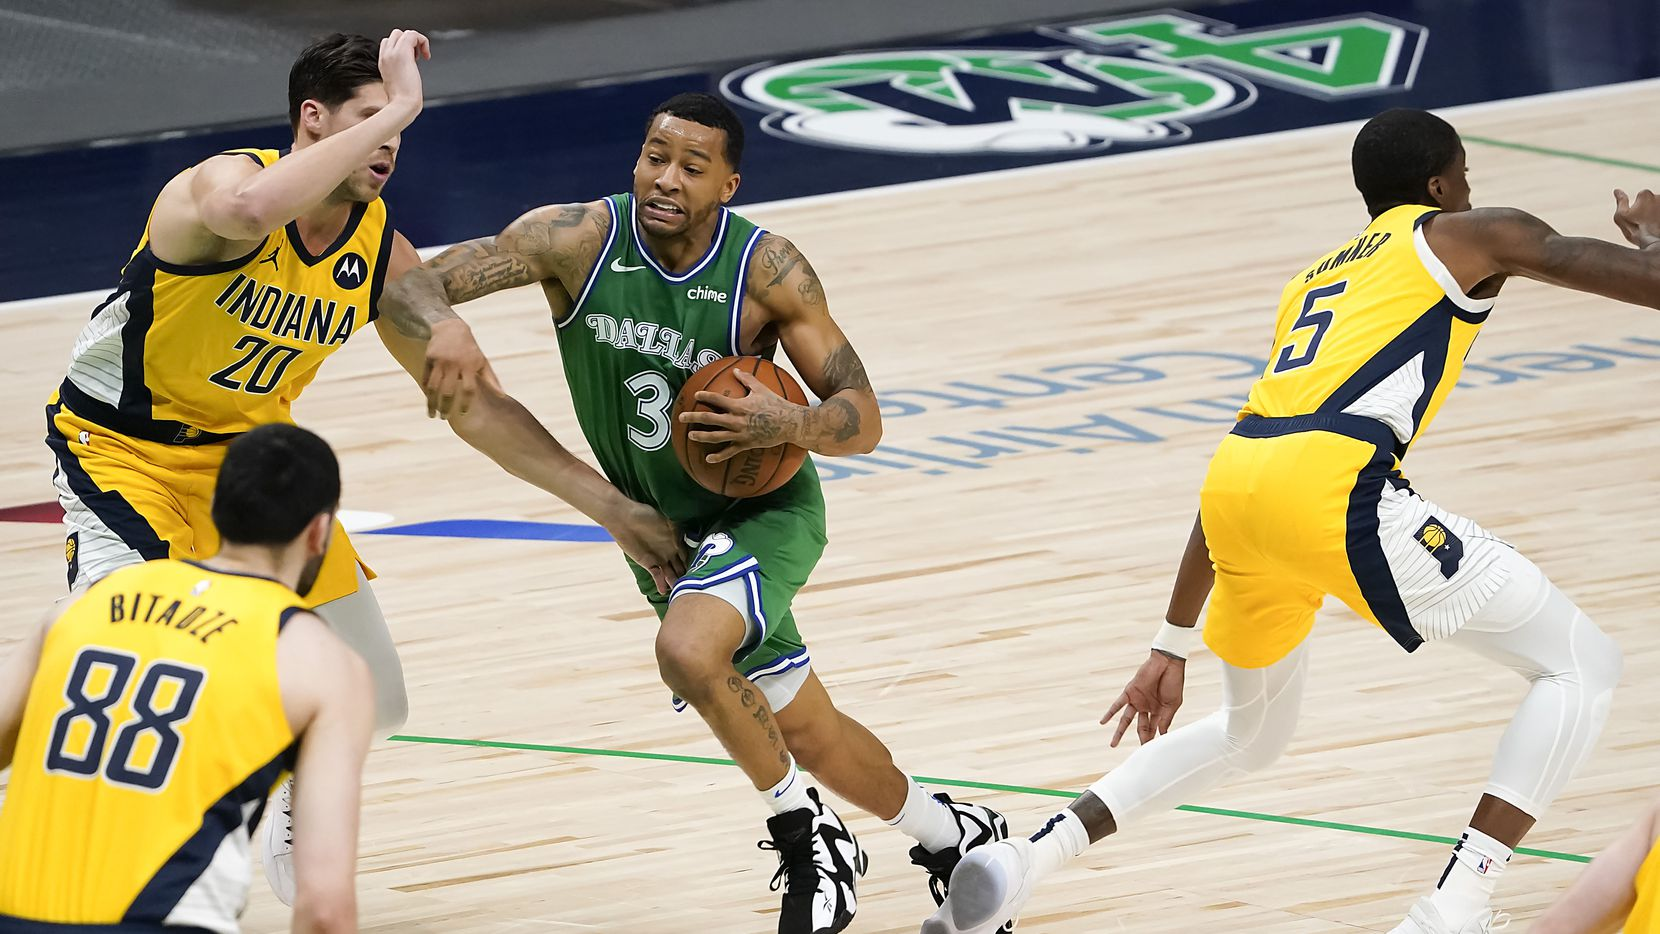 Dallas Mavericks guard Trey Burke (3) drives to the basket against Indiana Pacers forward Doug McDermott (20) during the first half of an NBA basketball game at American Airlines Center on Friday, March 26, 2021, in Dallas.